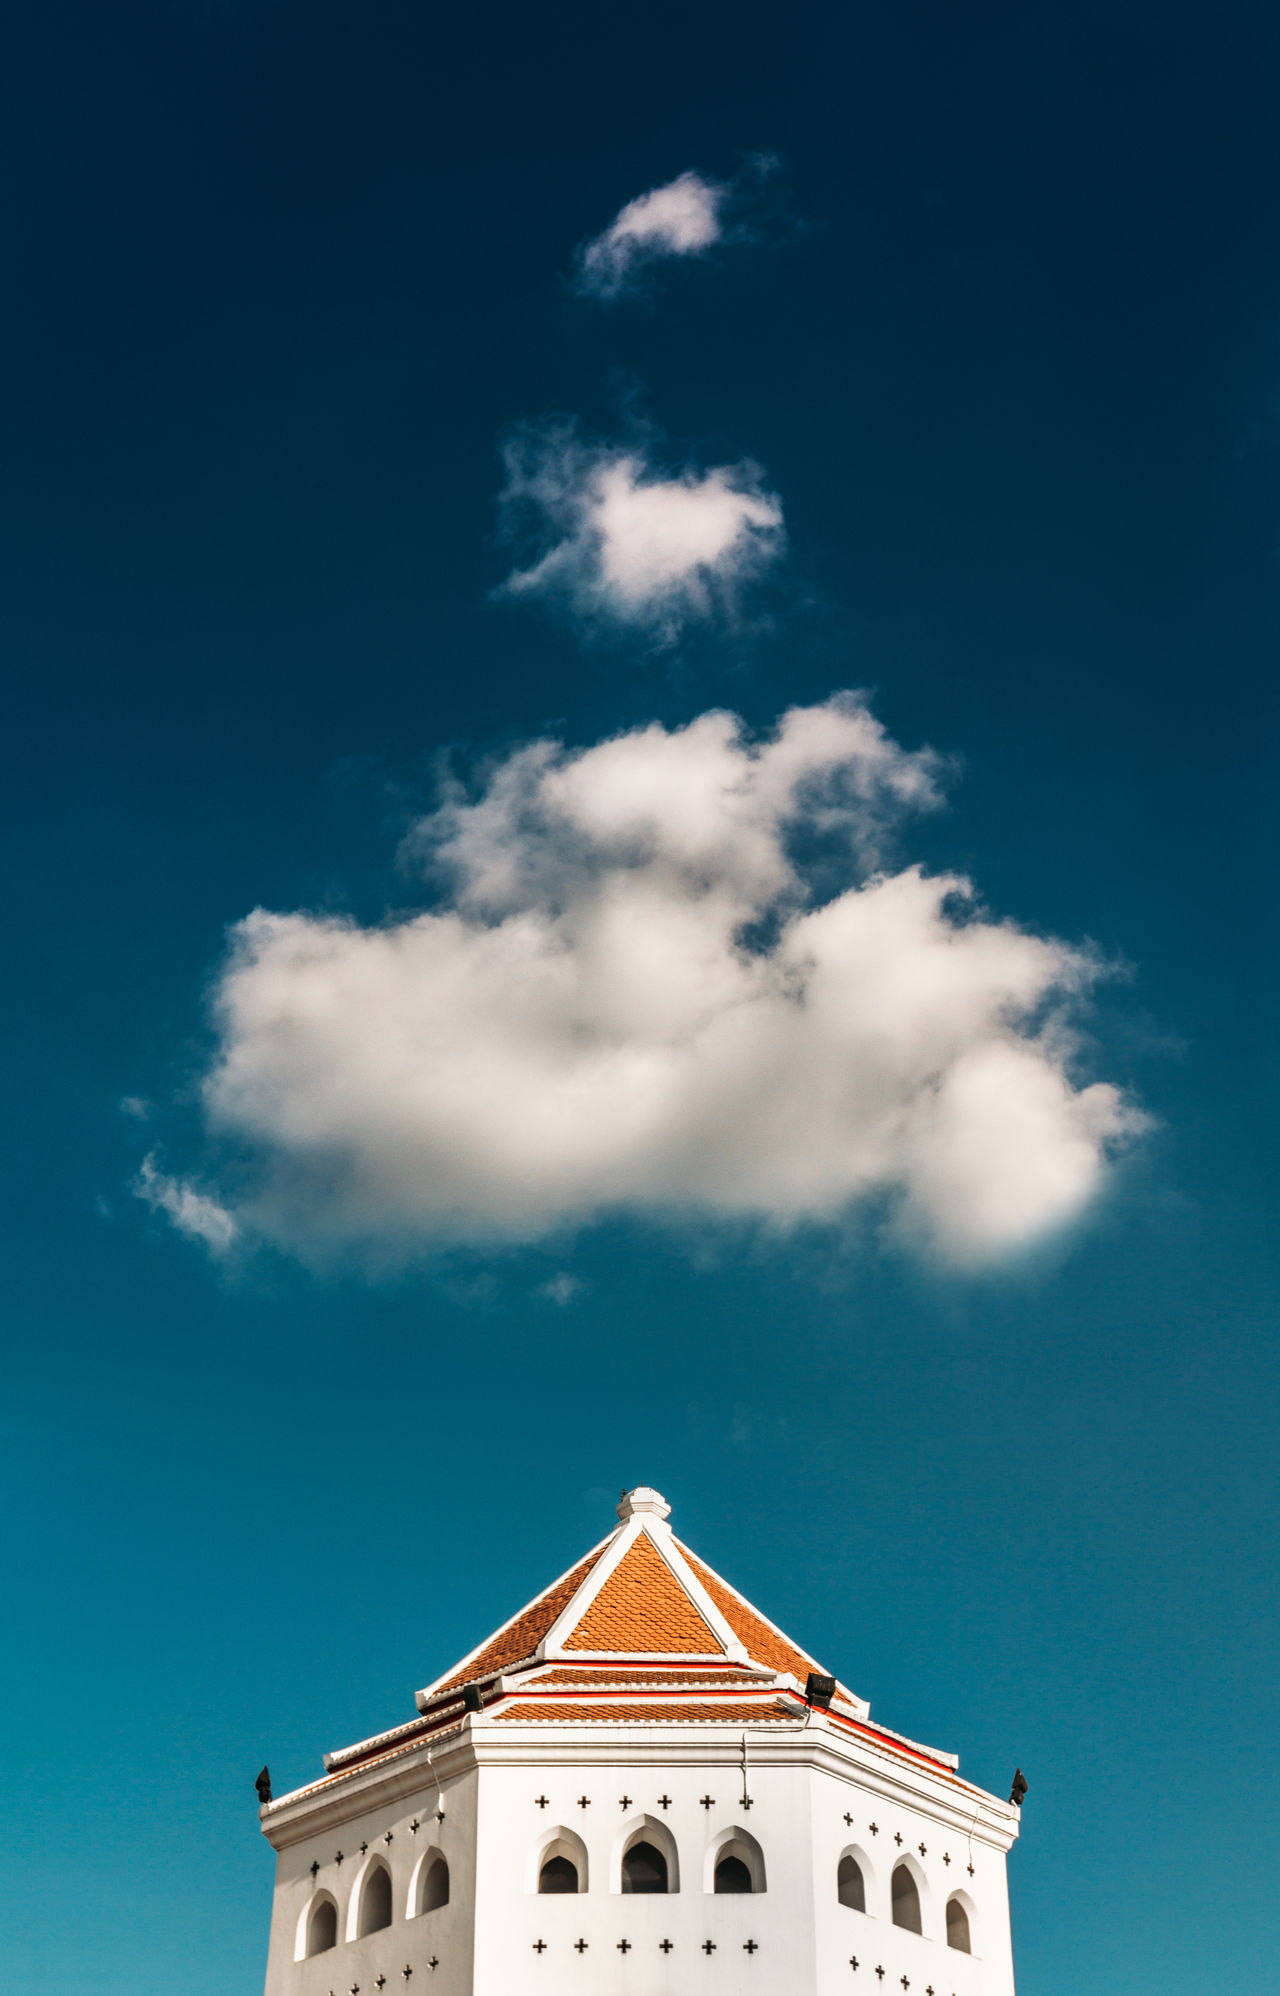 Architecture Building Exterior Building Feature Built Structure Cloud - Sky Day Minimalist Architecture No People Outdoors Sky Travel Destinations